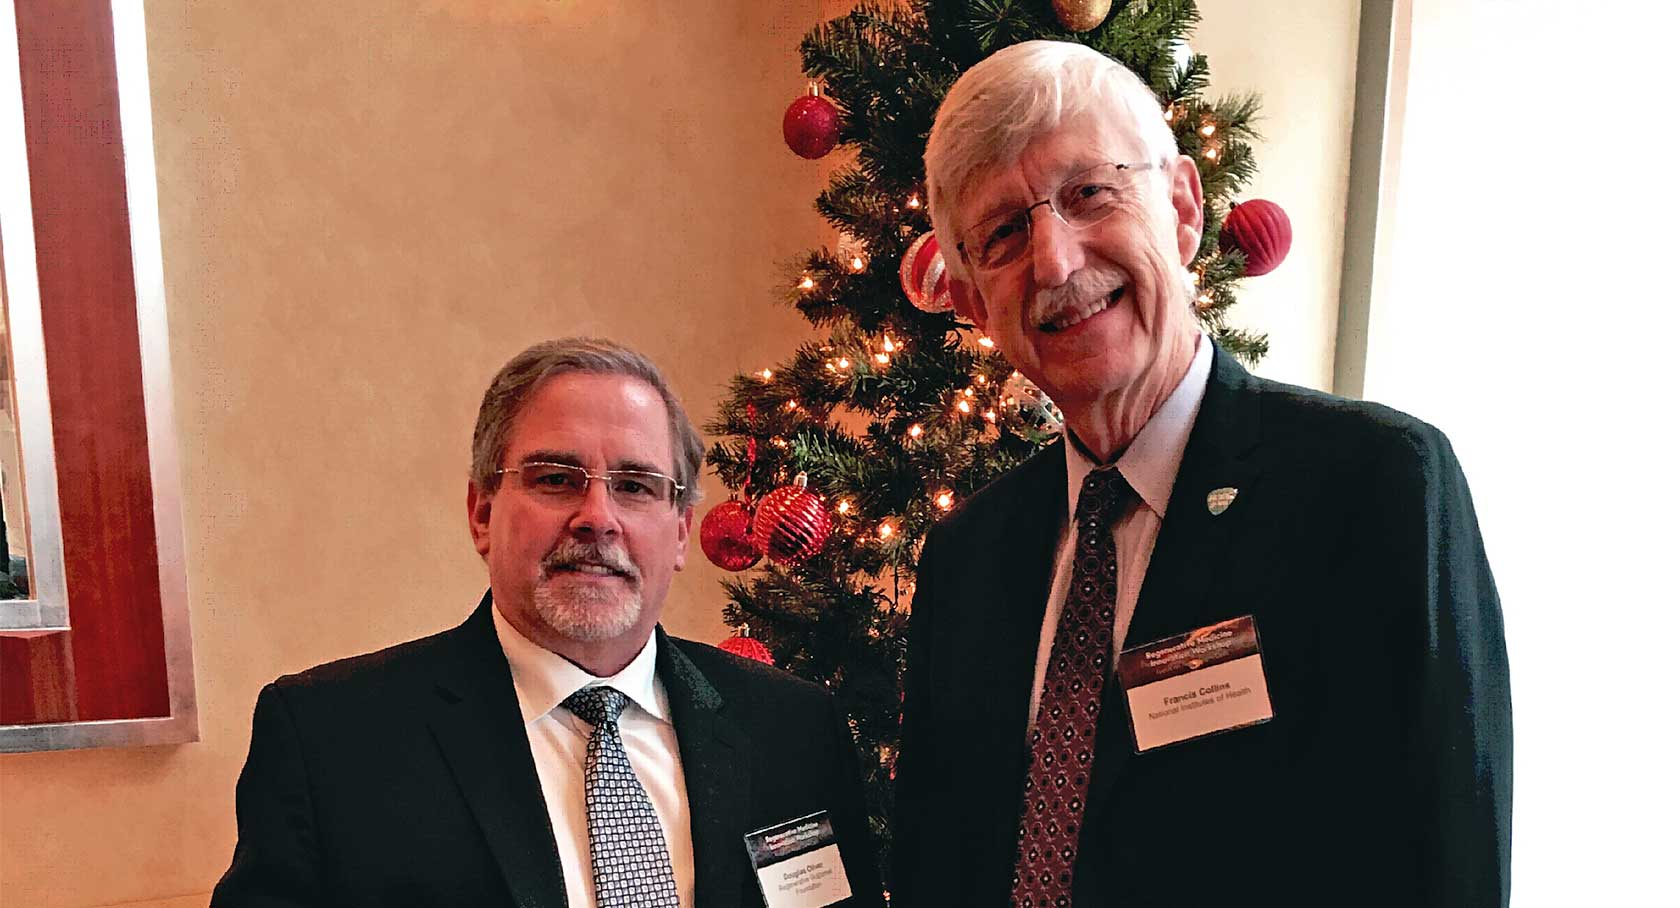 Pioneers of Hope: Patient Advocate Doug Oliver's Interview of Dr. Francis Collins, Director, National Institutes of Health (NIH)